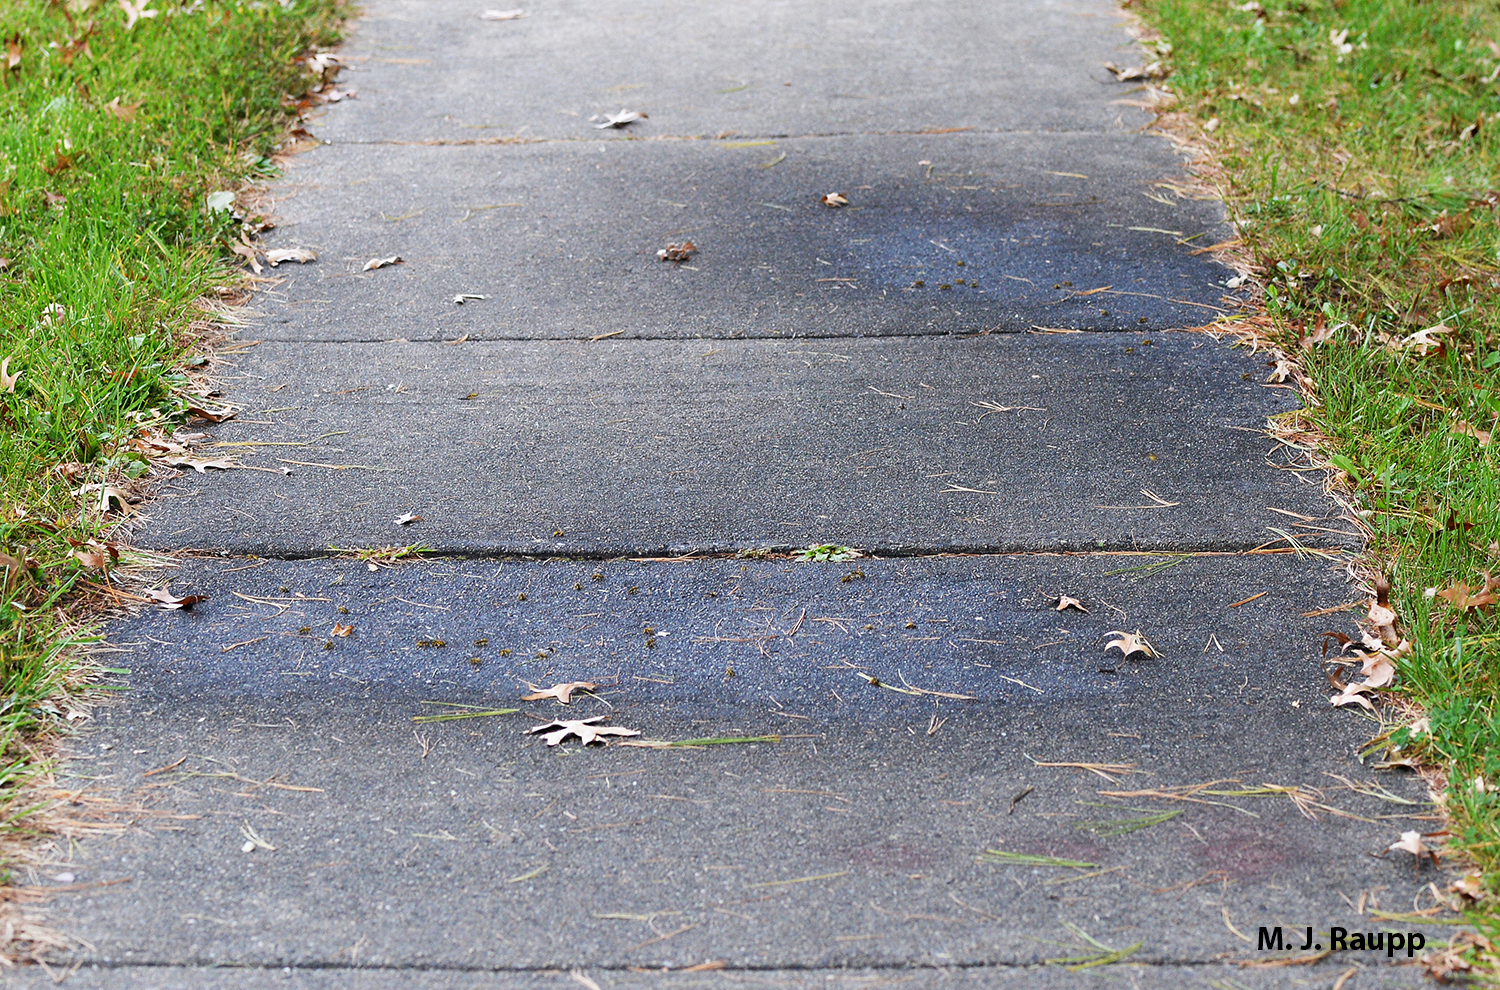 Dark wet patches of honeydew on a sidewalk mark the spot where white pine aphids feed on branches above.